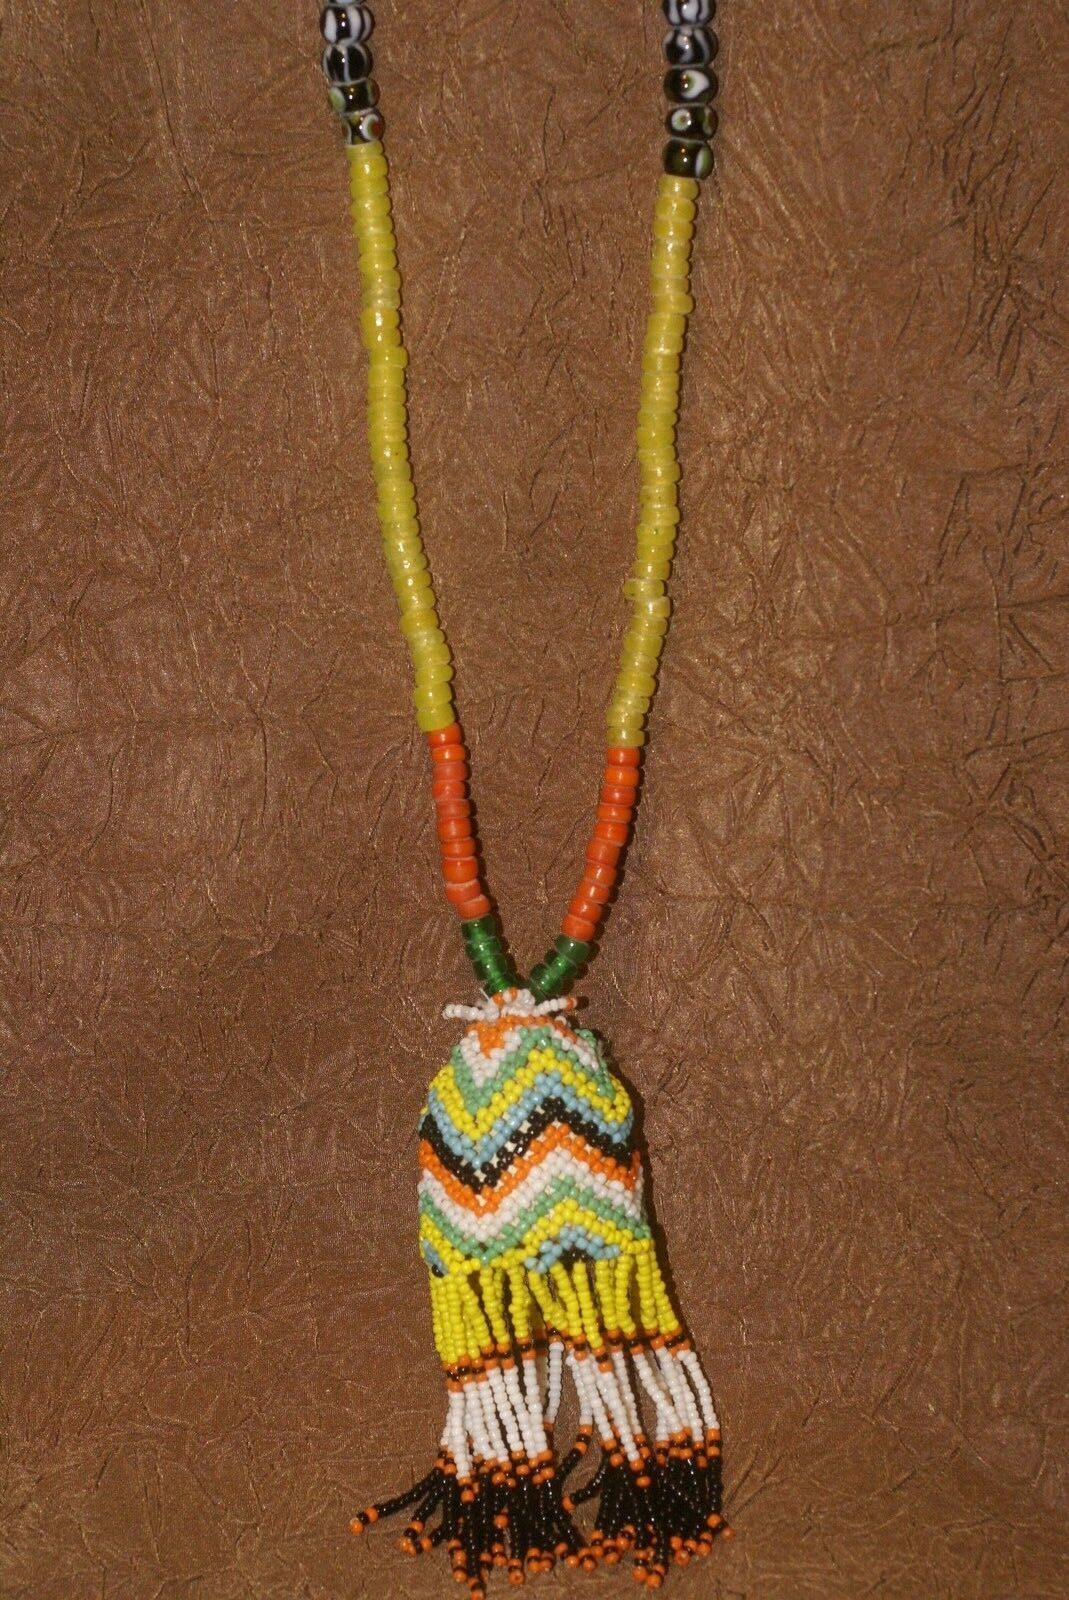 Tribal Kalimantan Old Beads Tassel Necklace Ethnic Status Symbol Hand Crafted -